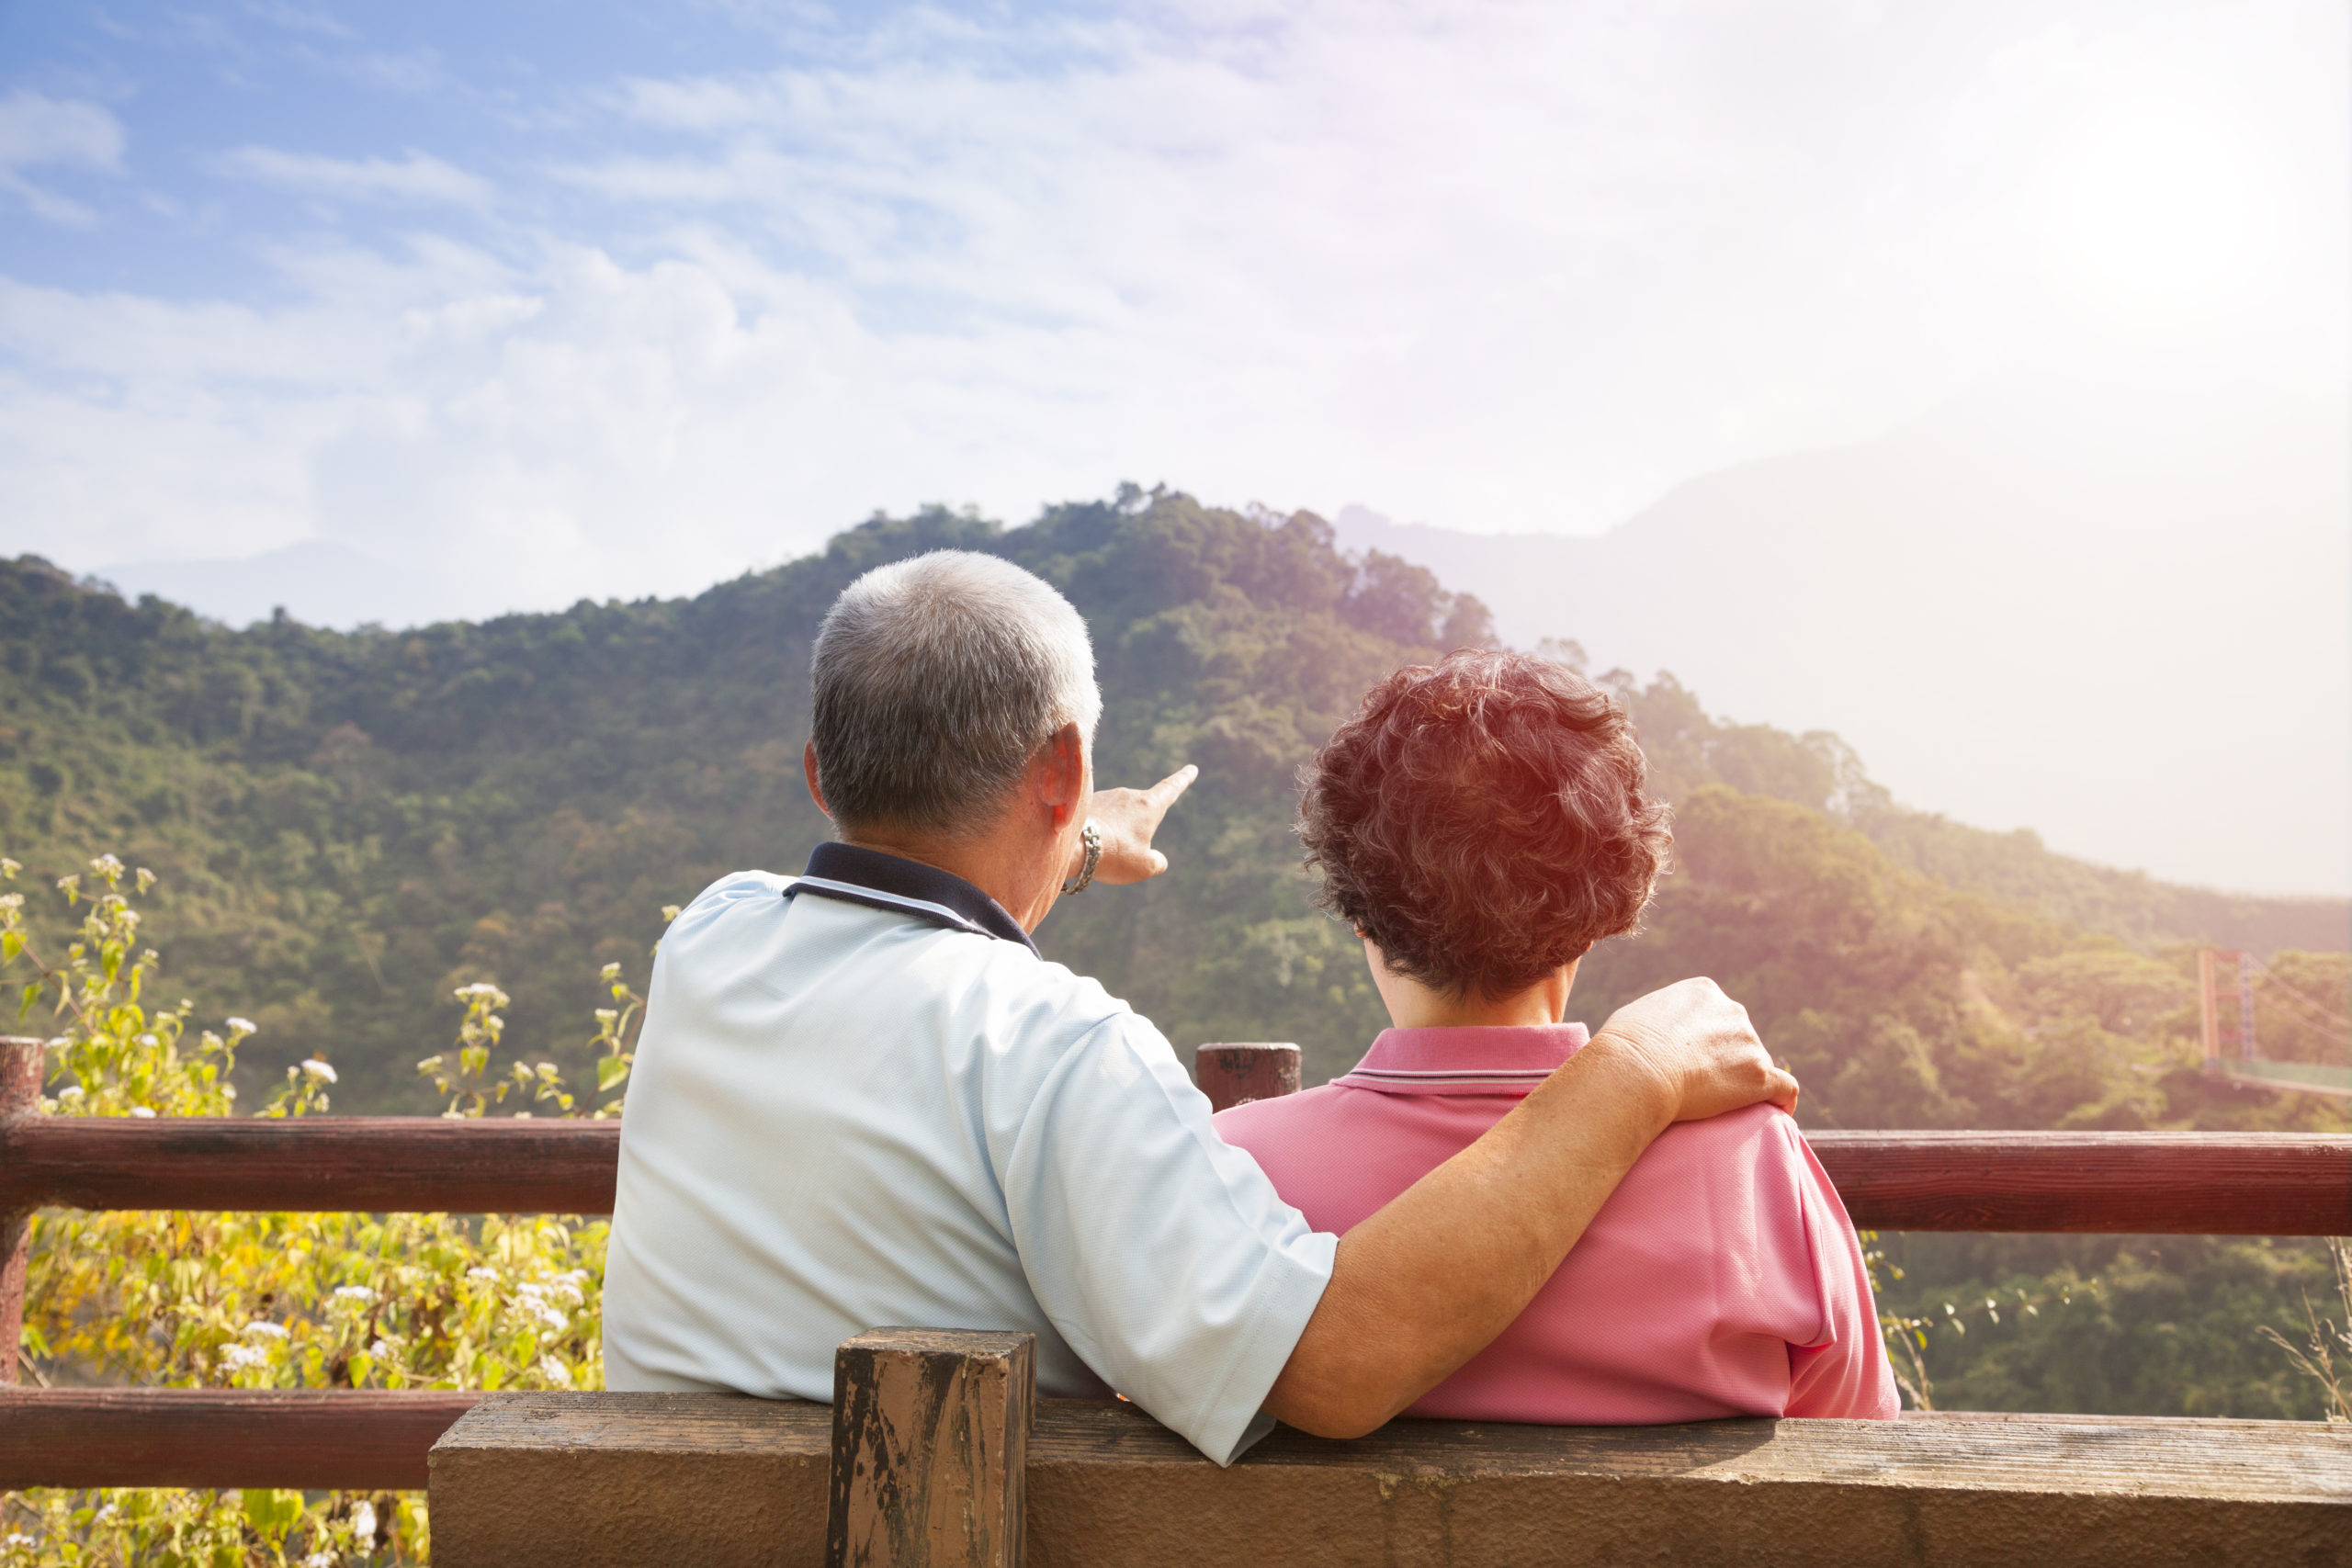 Senior,Couple,Sitting,On,The,Bench,Looking,The,Nature,View